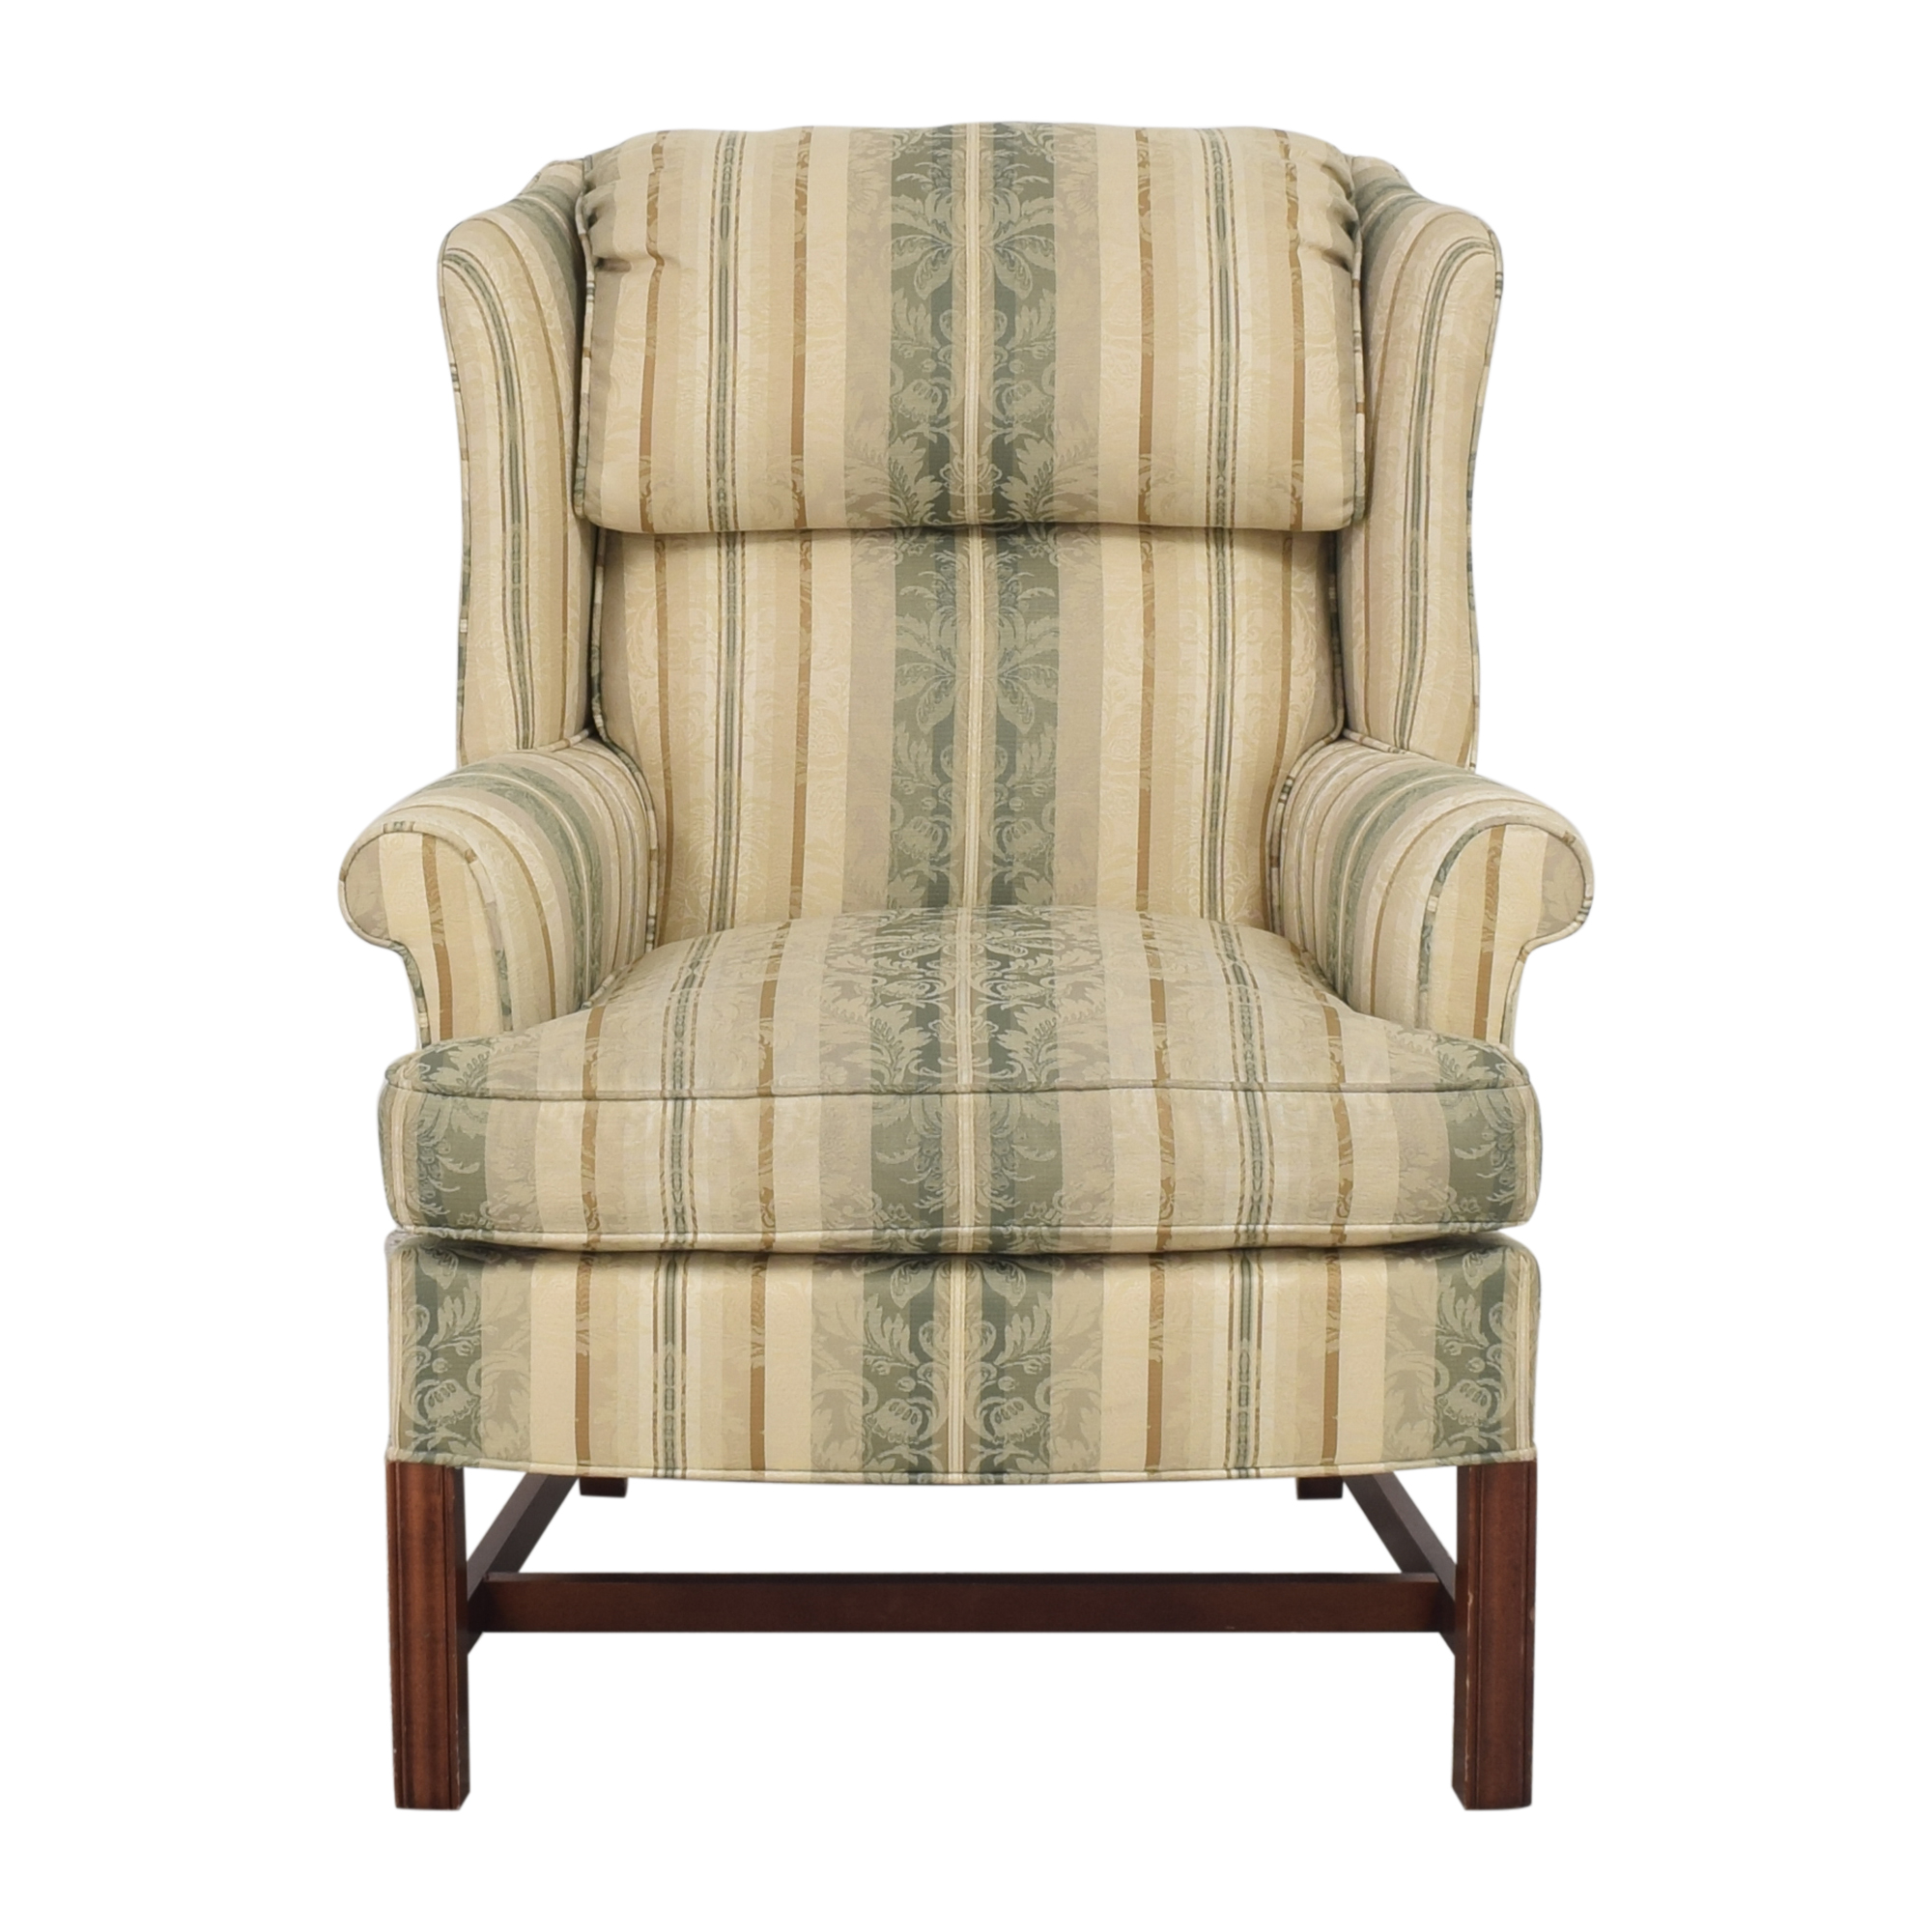 Woodmark Woodmark Wing Back Accent Chair